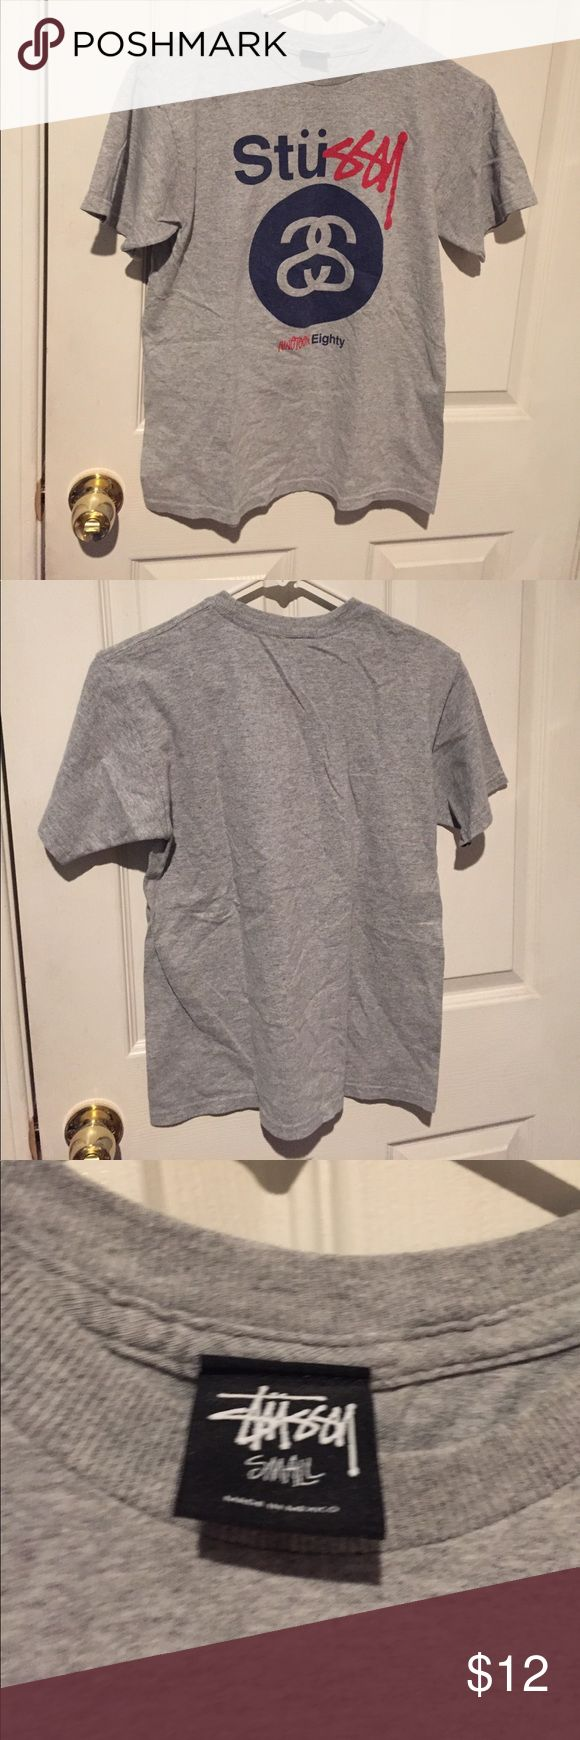 S size Stussy shirt S size Stussy shirt; 15% off bundle of 2; jeans on sale too in another listing Stussy Tops